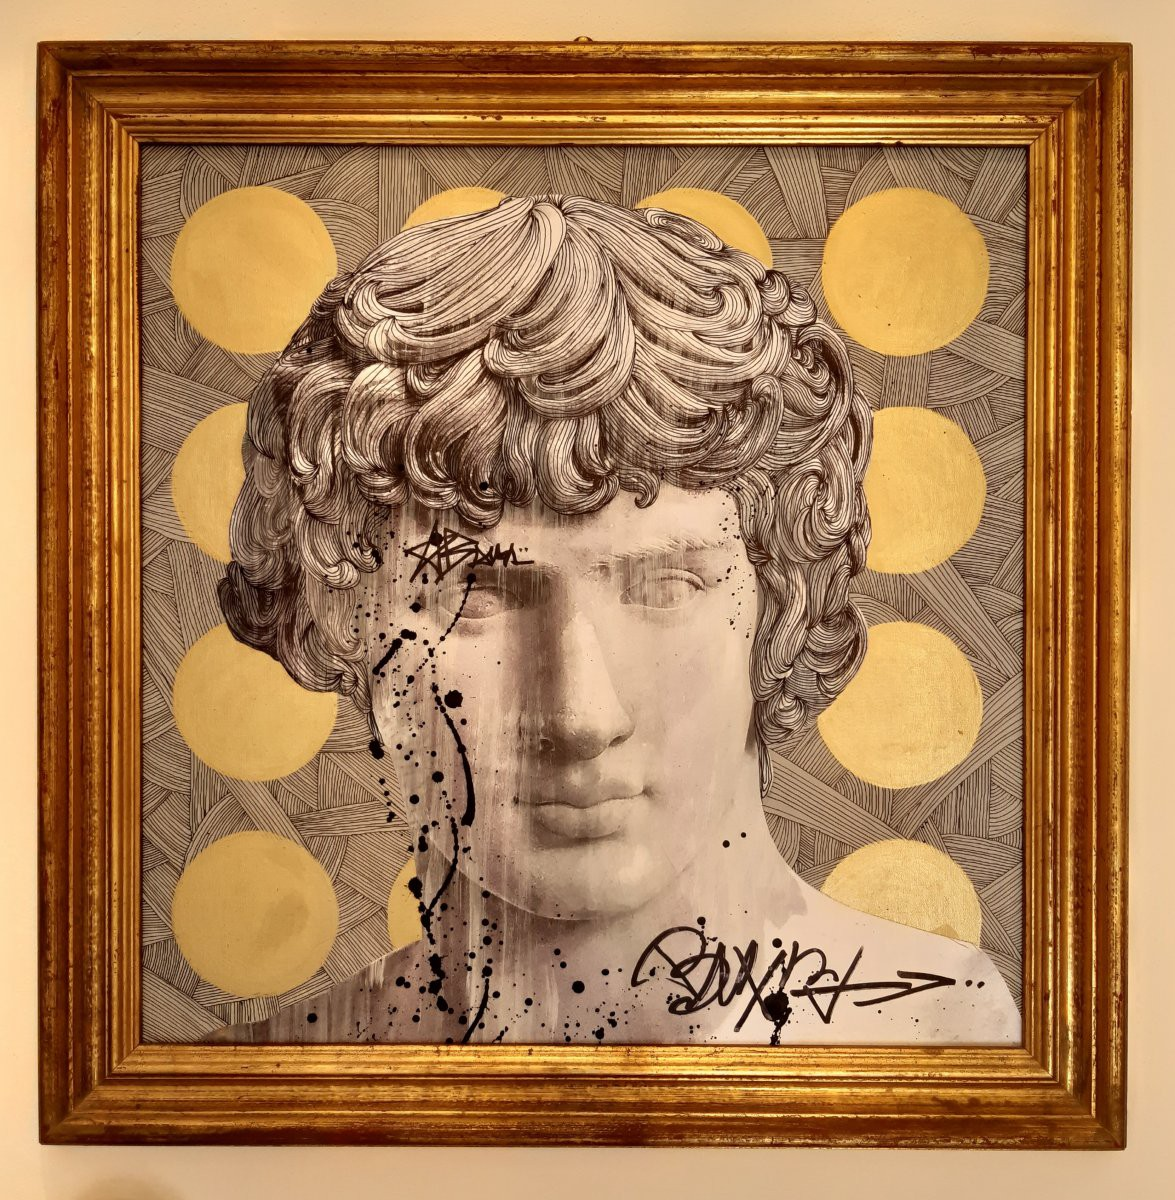 Antique painting street art of Antinous